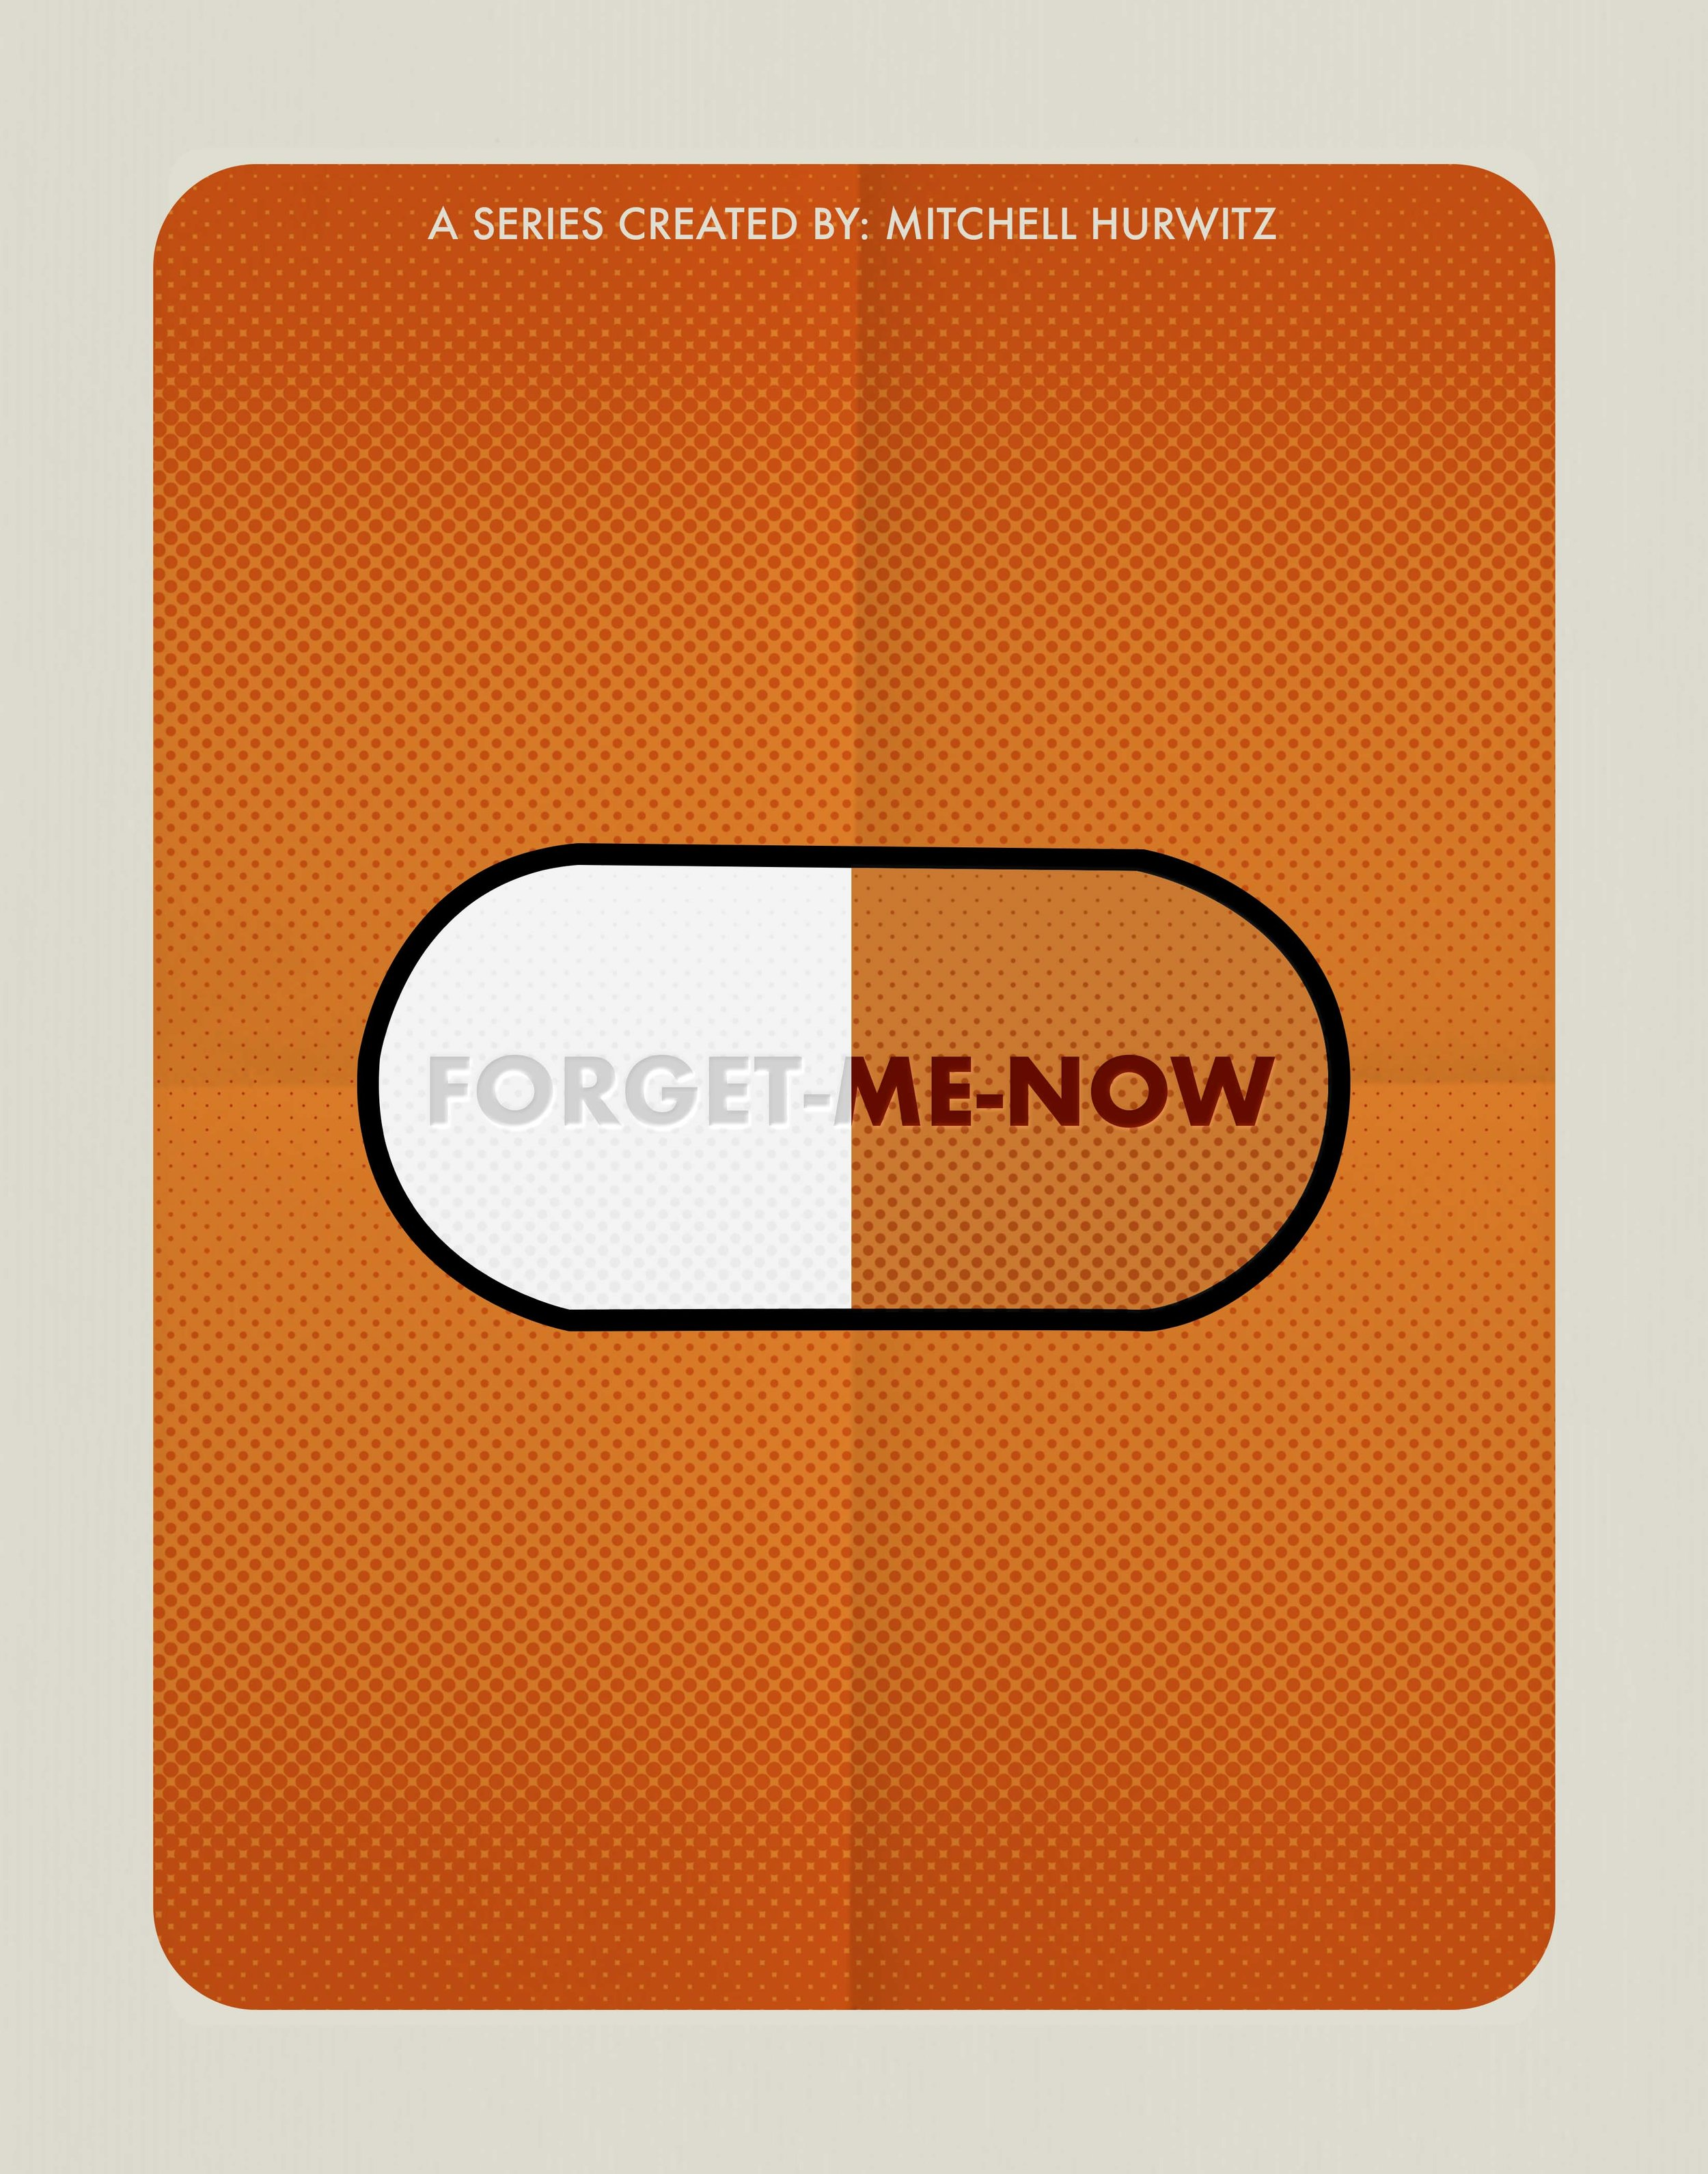 34. Arrested Development | Forget Me Now | 11x14 poster-b&w.jpg